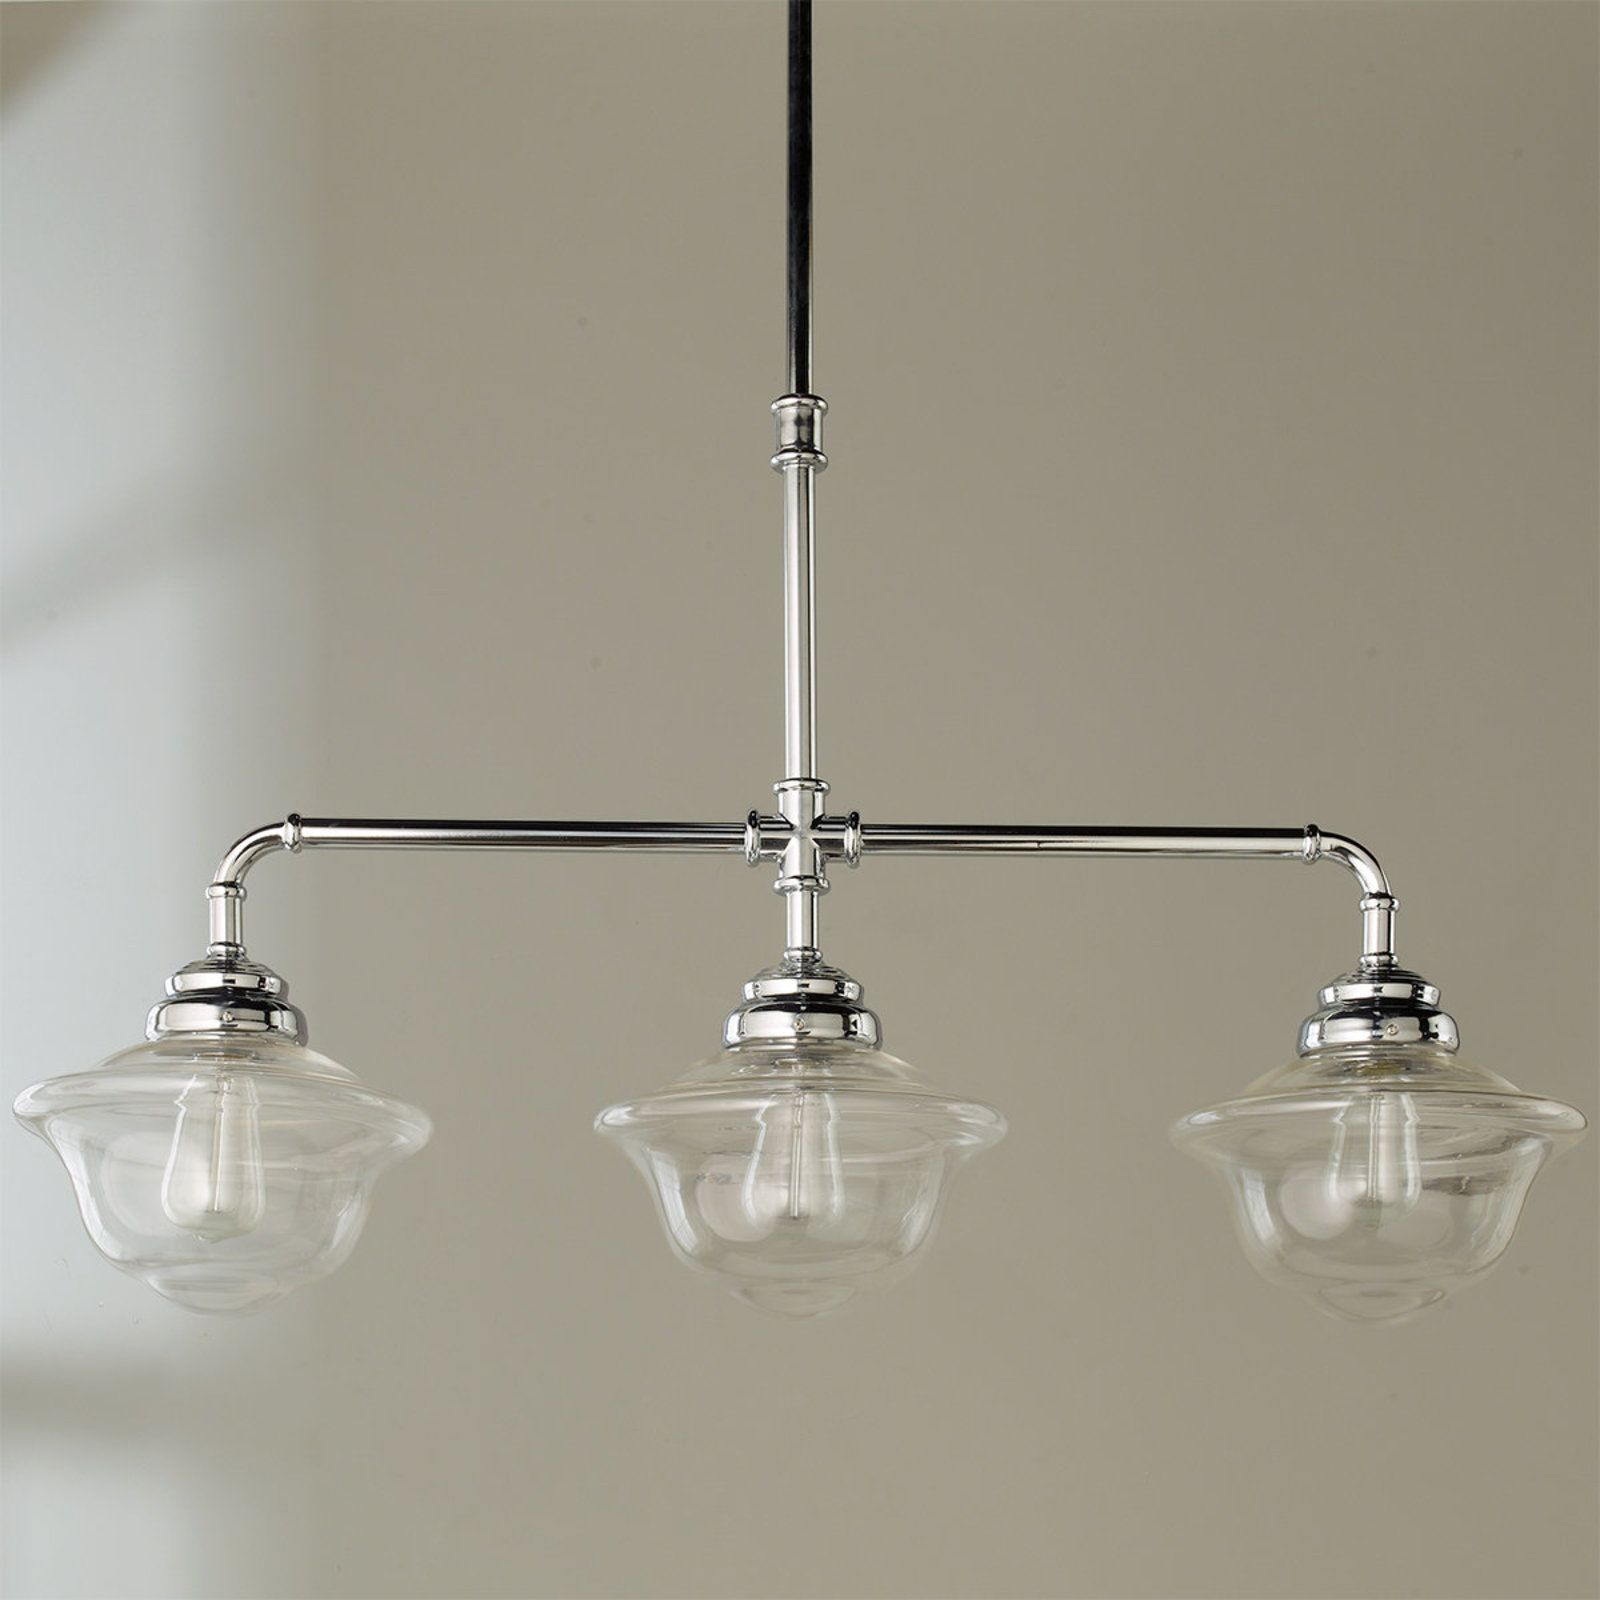 Timeless schoolhouse island chandelier chandeliers chandelier timeless schoolhouse island chandelier arubaitofo Image collections